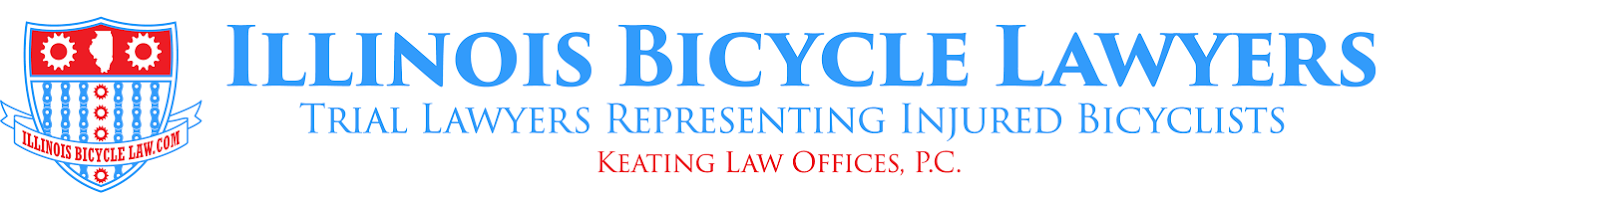 ILLINOIS BICYCLE LAWYERS | Chicago, Illinois Bike Accident Personal Injury Attorneys